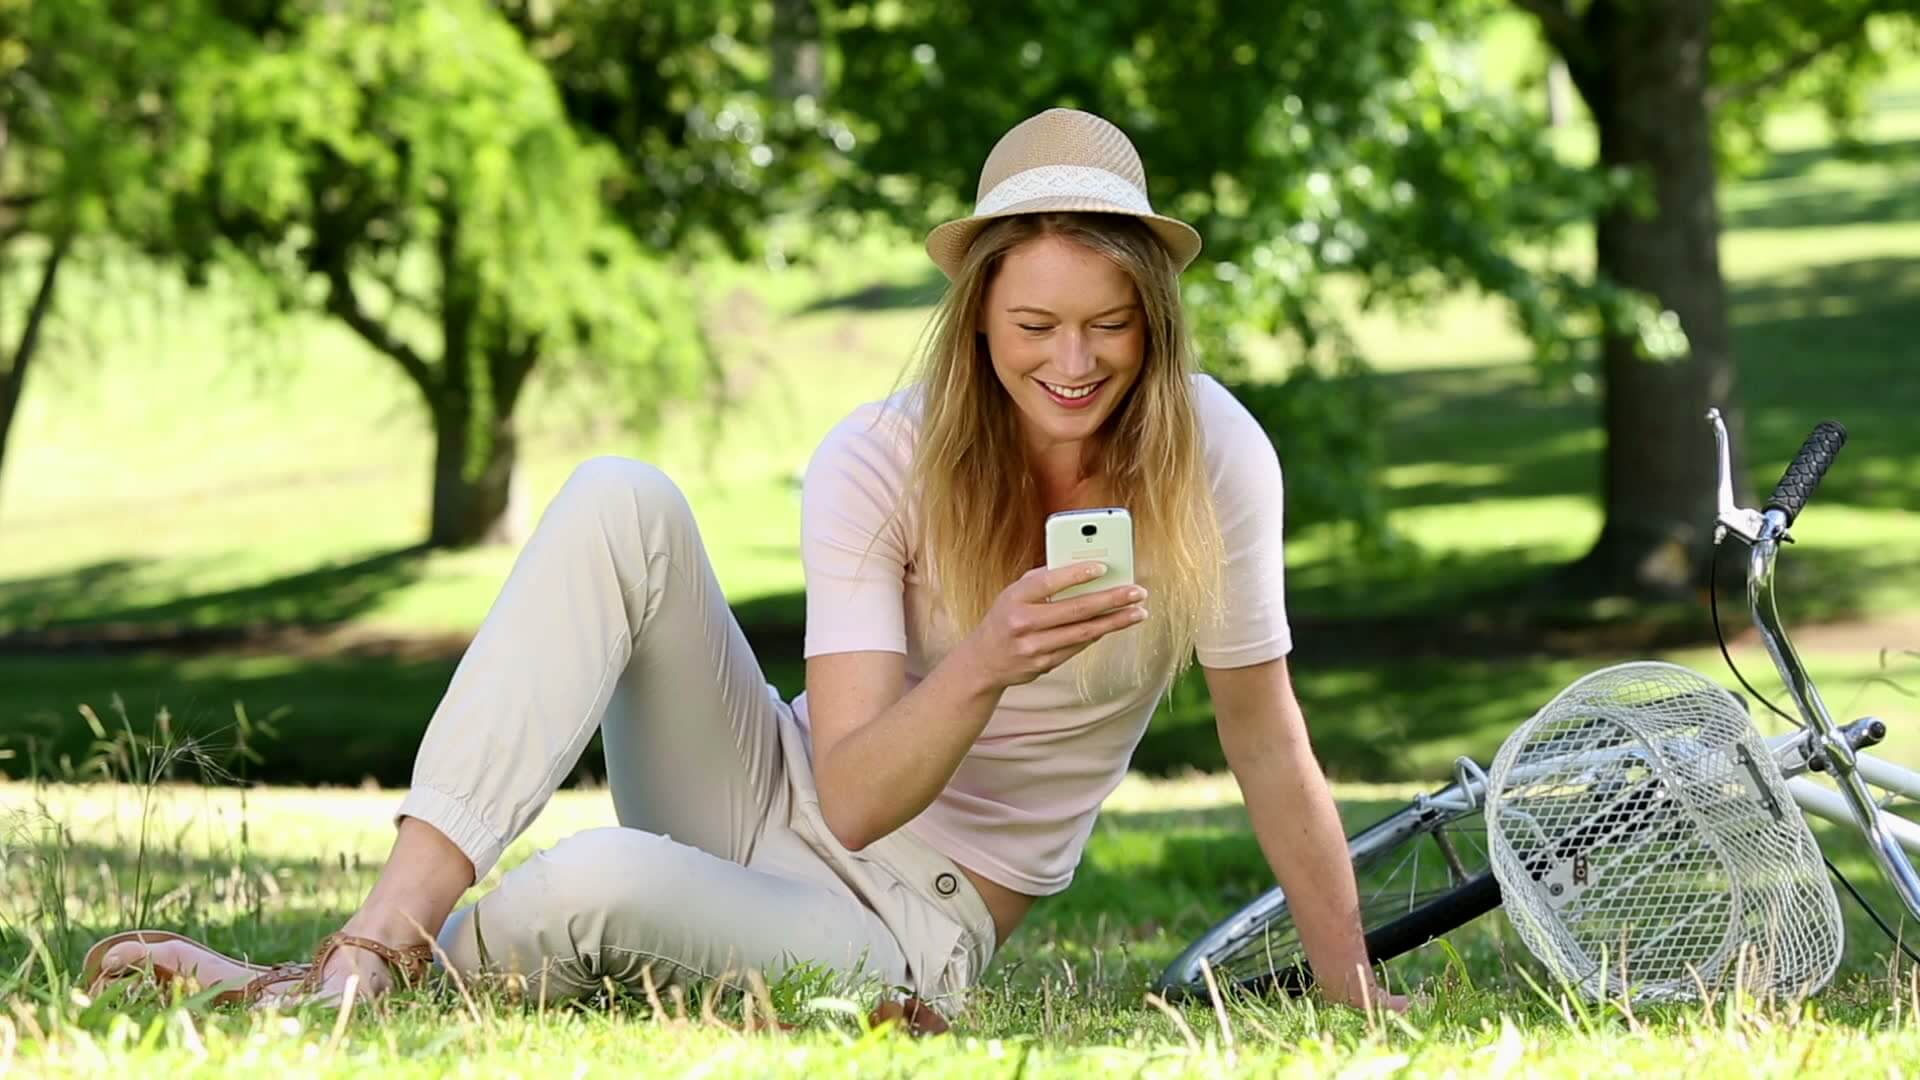 stock-footage-pretty-girl-using-smartphone-beside-her-bike-in-the-park-on-a-sunny-day.jpg